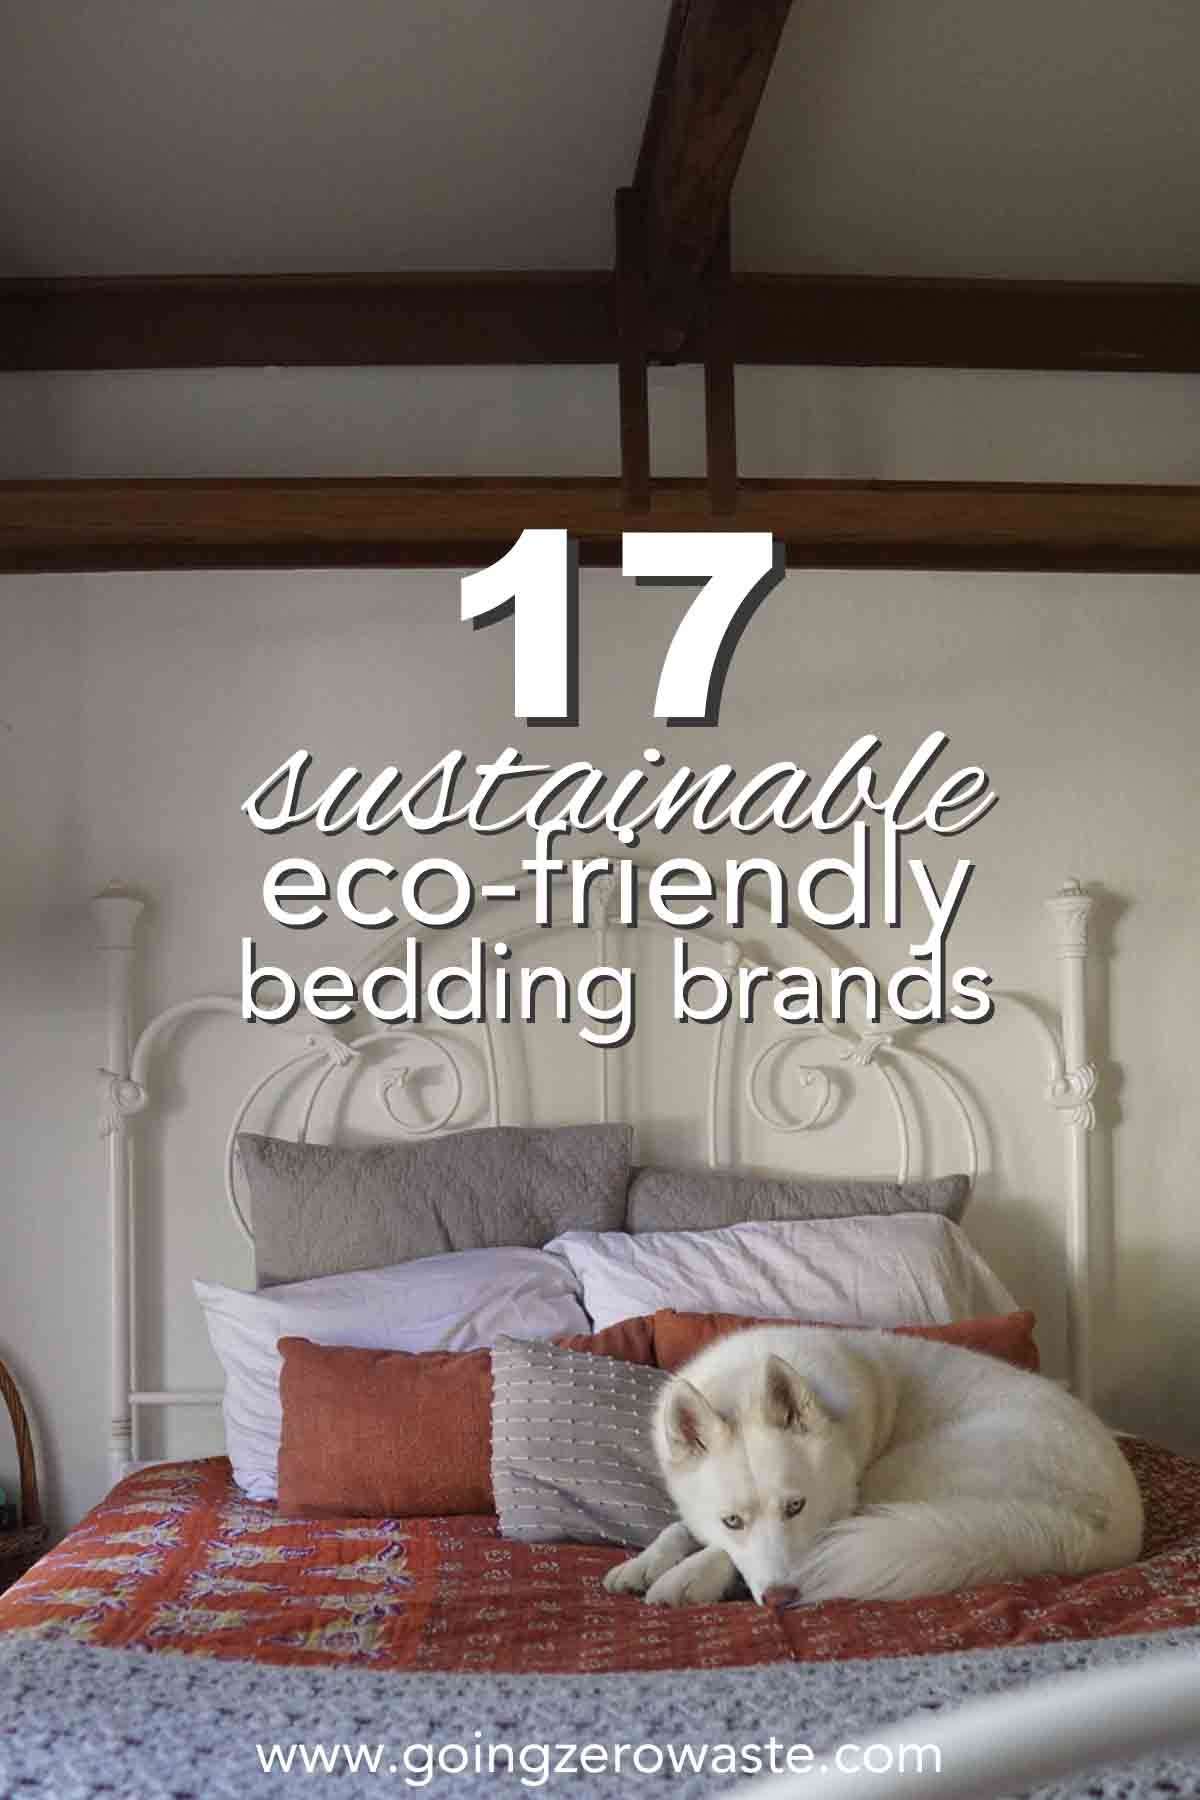 17 Sustainable and Eco friendly bedding brands from www.goingzerowaste.com